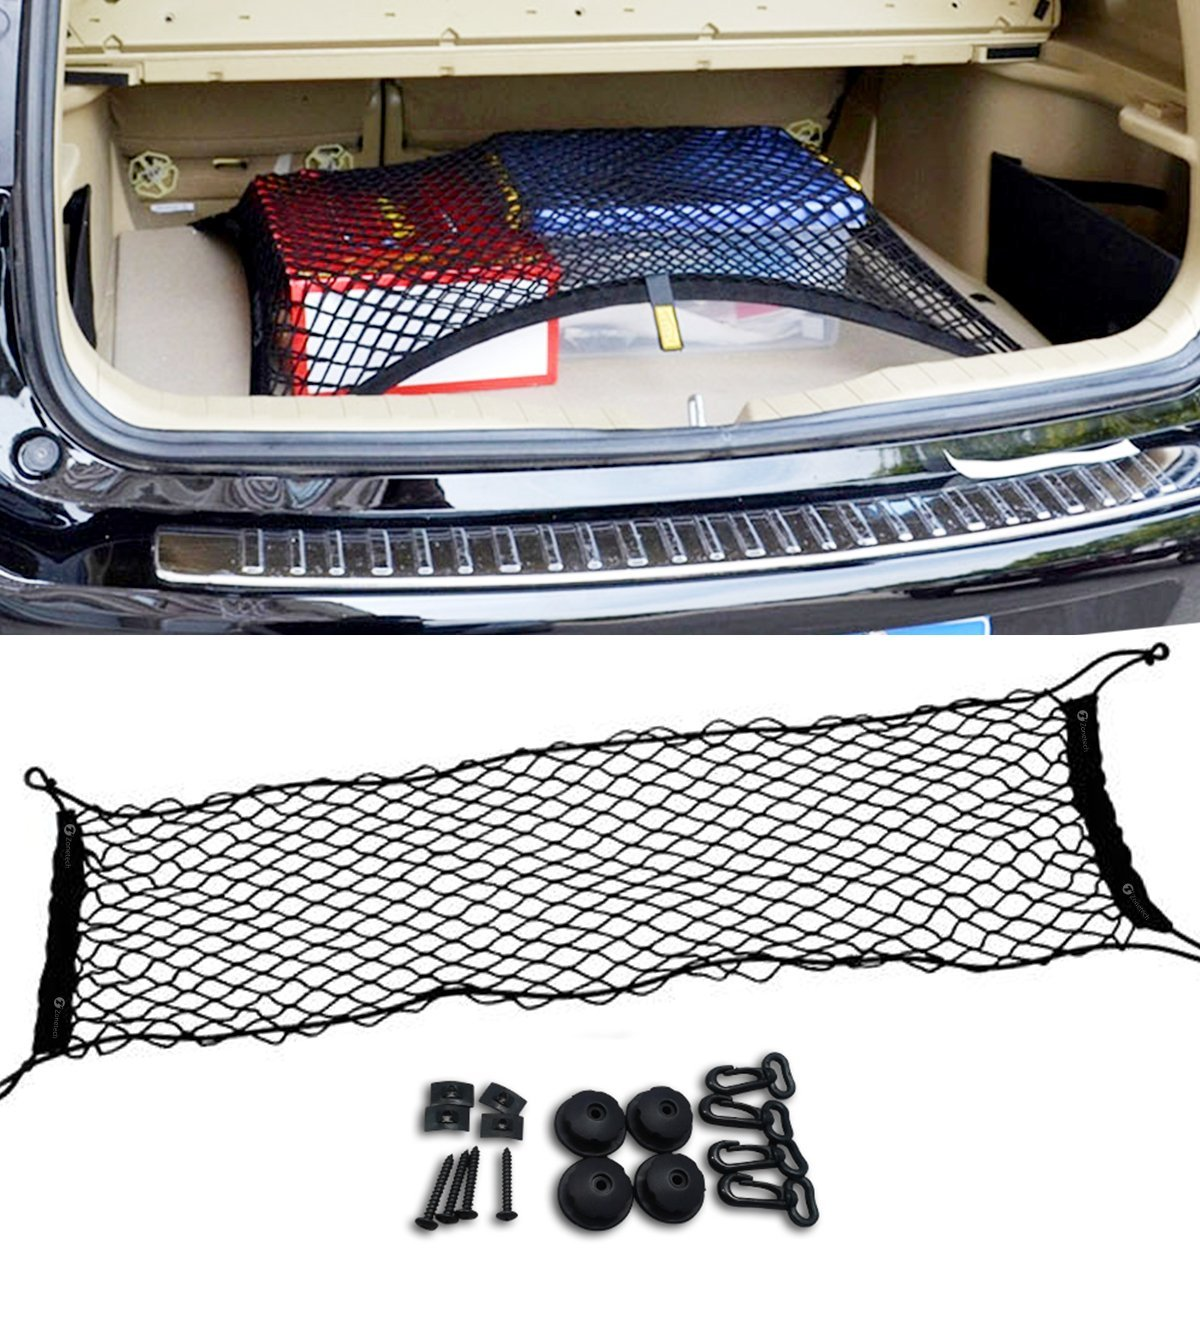 Zone Tech Vehicle Trunk Mesh Cargo Net - Black Premium Quality Universal Fit Cargo Storage Organizer with 3 Mounting Options